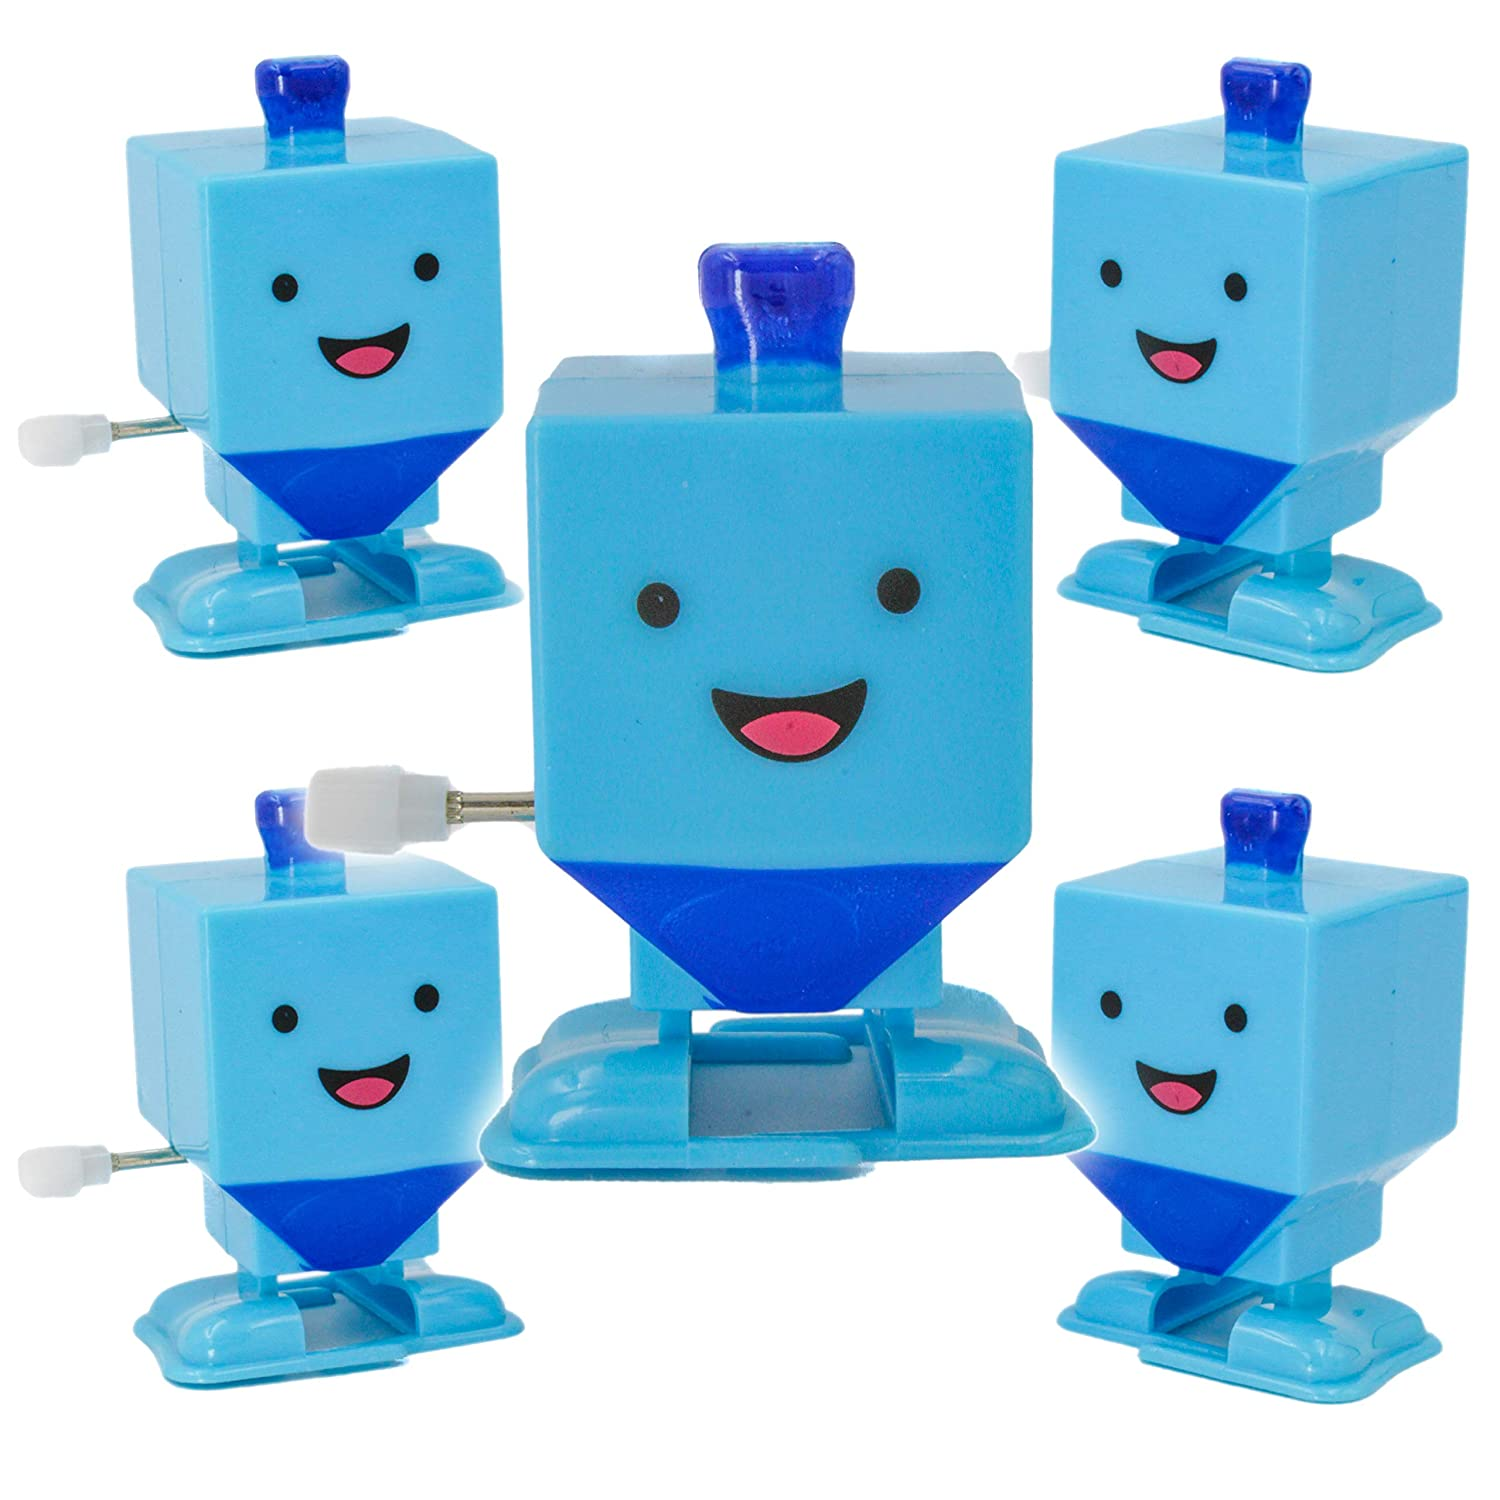 Props for Hanukkah and Gag Shows 2-Pack Dreidel Wind-Up Plastic Toy with Wind-Up Mechanism Supplies Perfect Party Favors